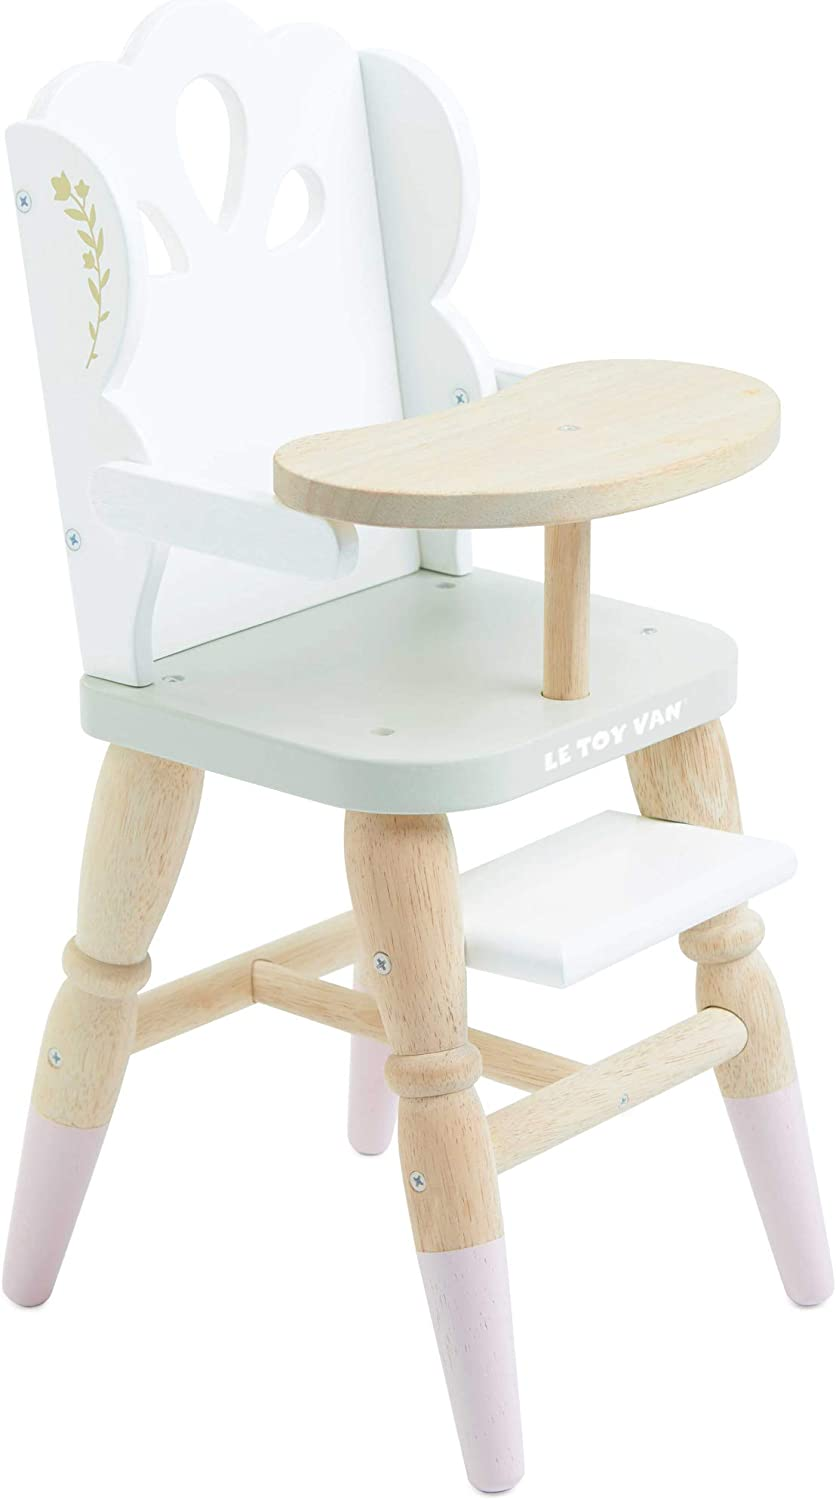 Le Toy Van - Educational Wooden Toy Role Play Beautiful Doll High Chair | Girls Pretend Play Toy Pram Playset - for Ages 3+ (TV601)